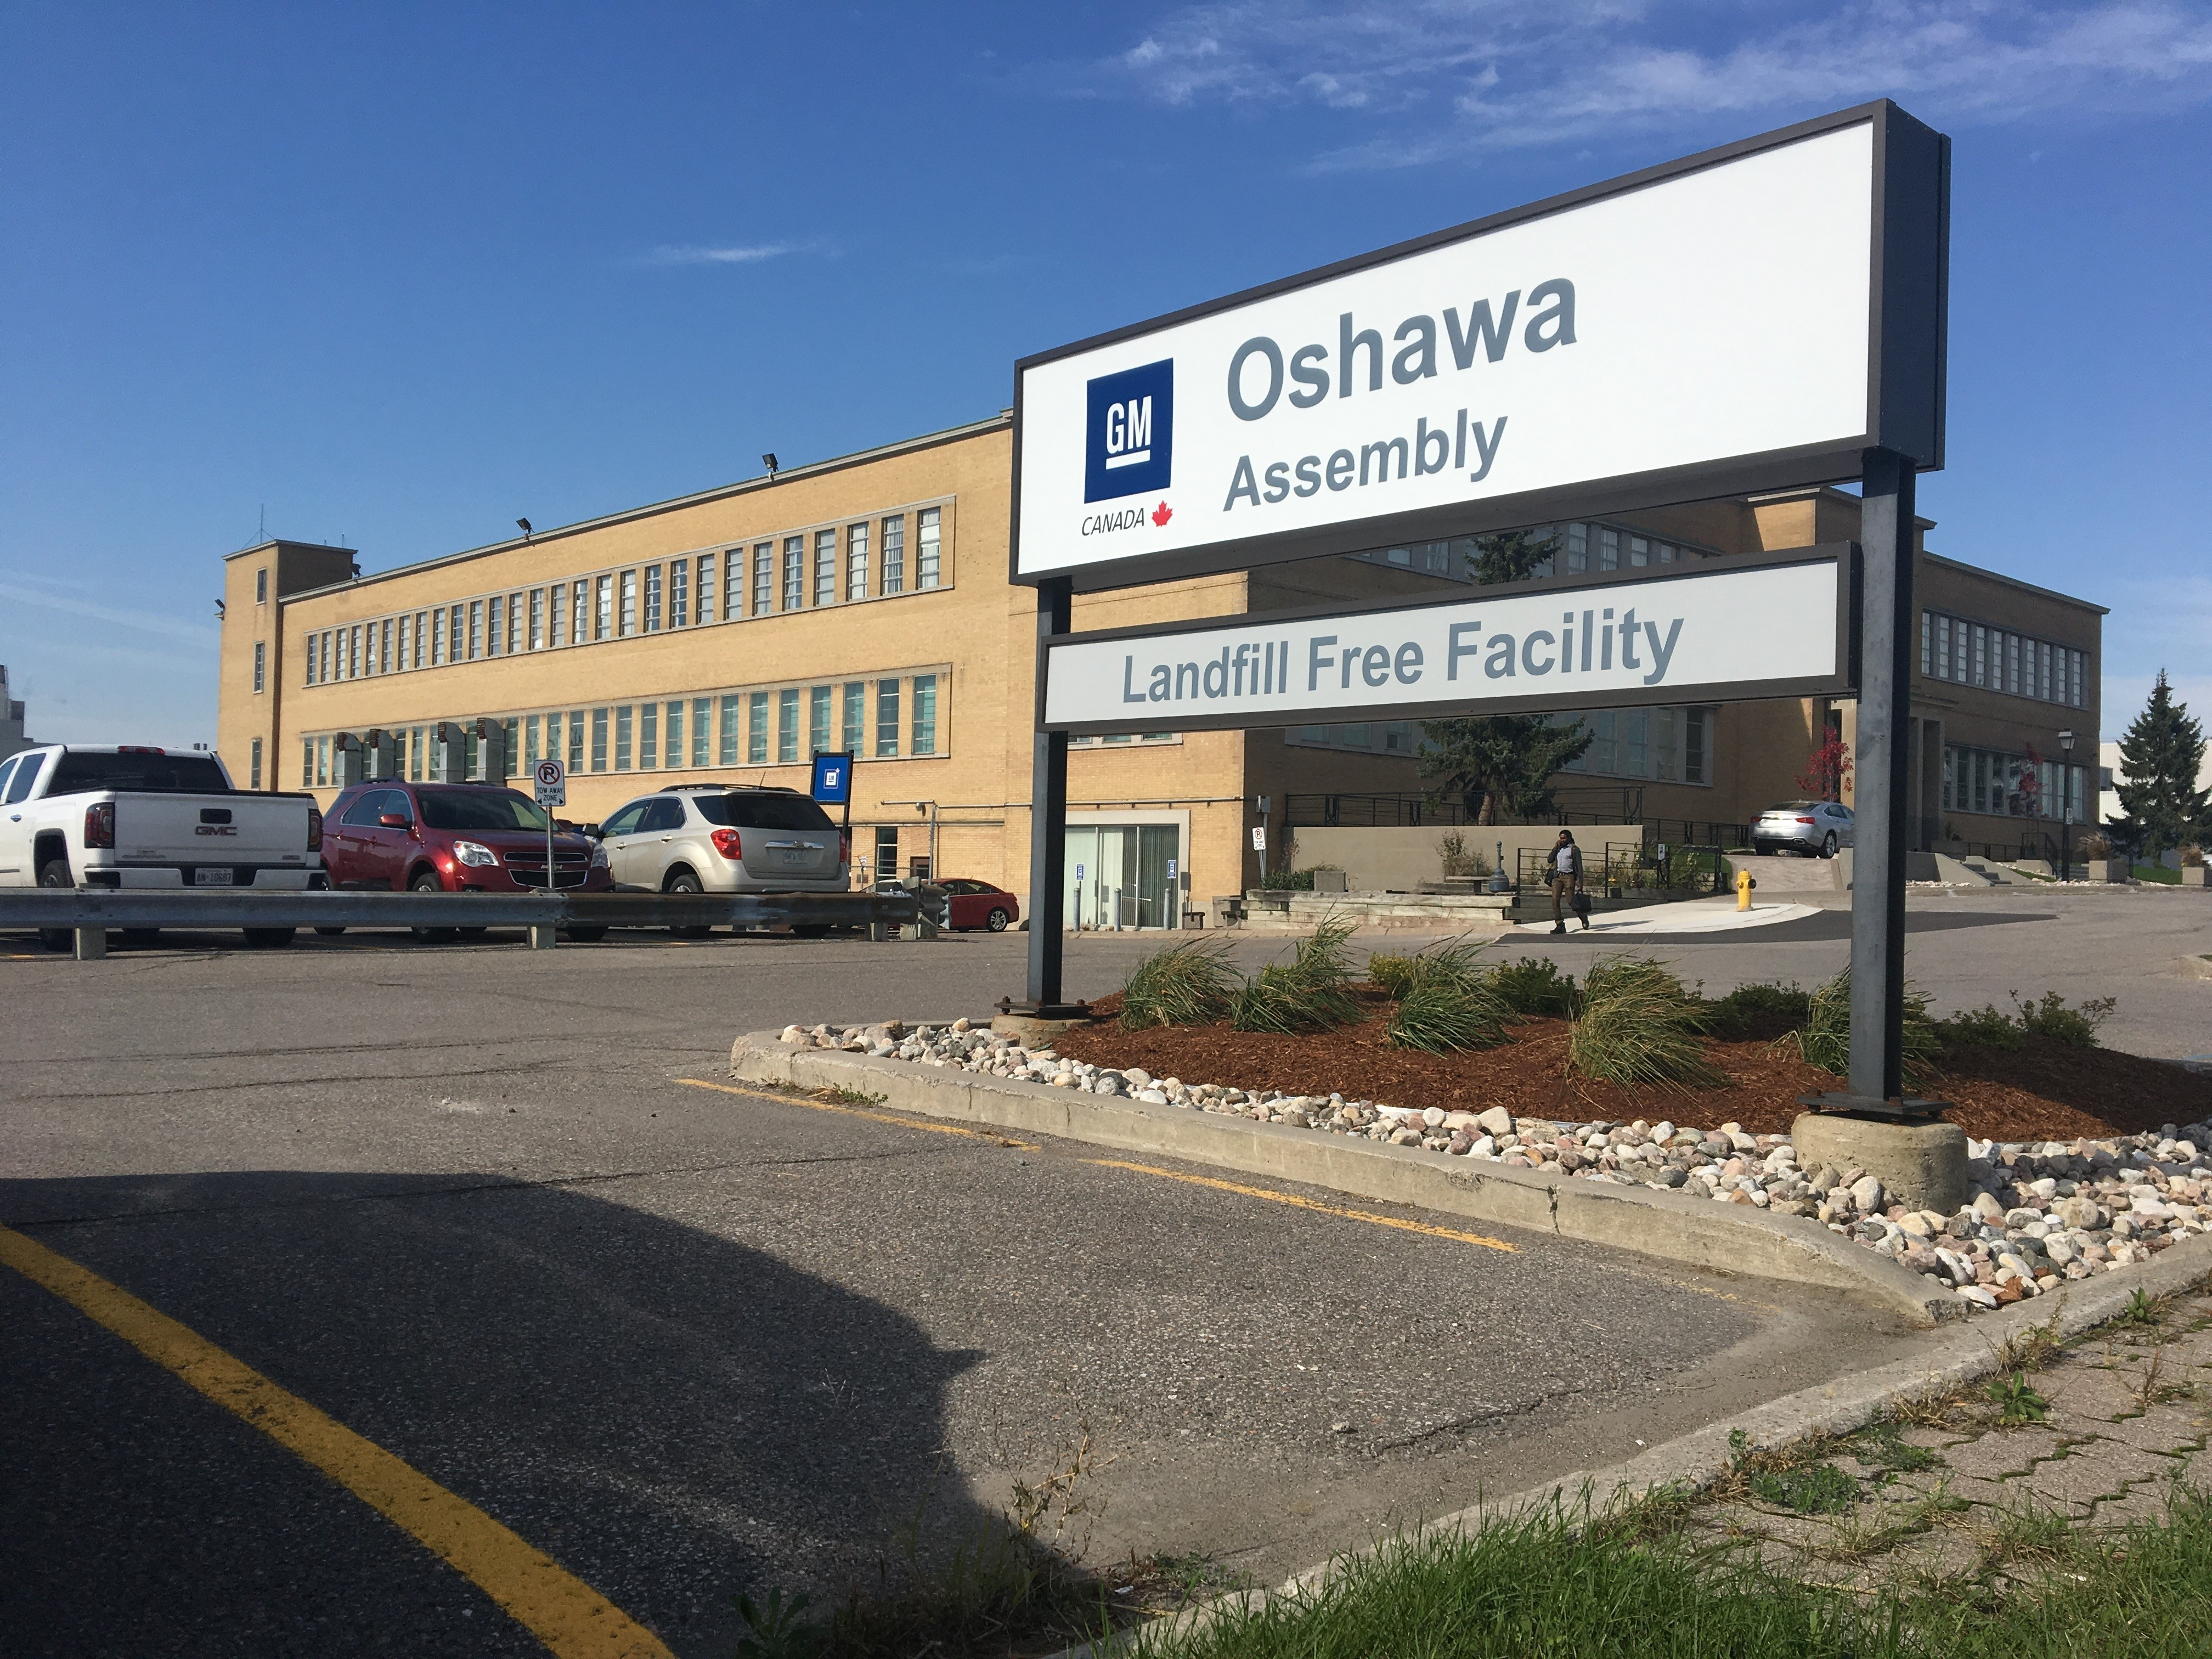 Brock council passes motion calling for GM to keep Oshawa plant open